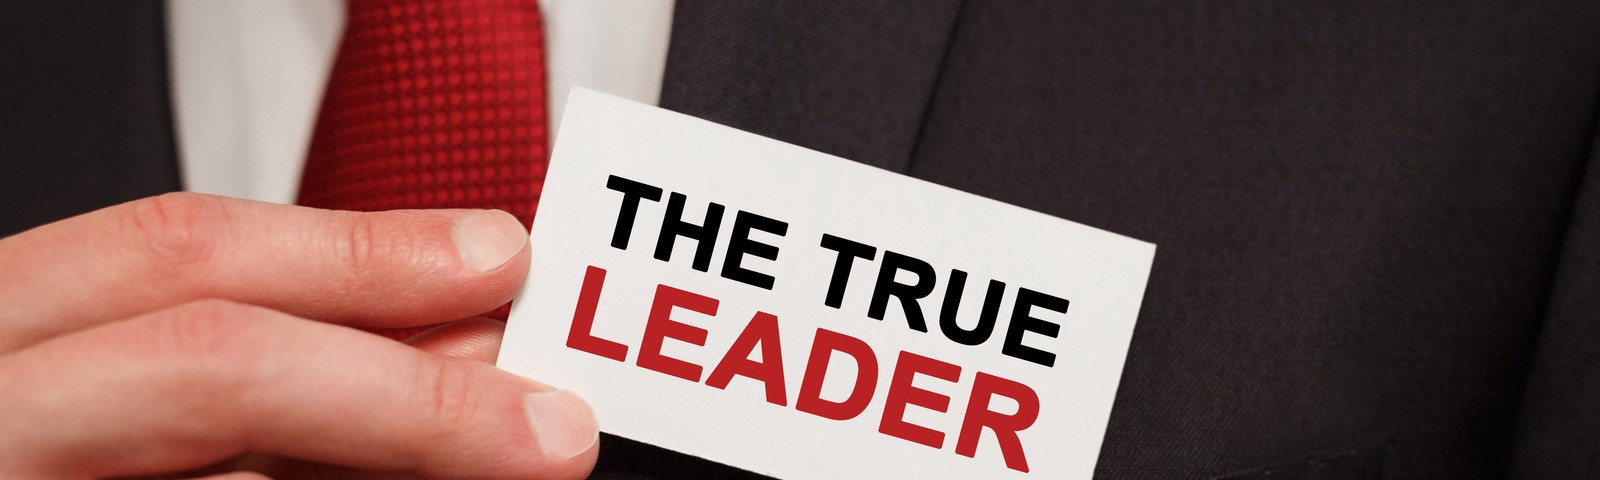 """Man pulling a card that says """"the true leader"""" out of breast pocket"""